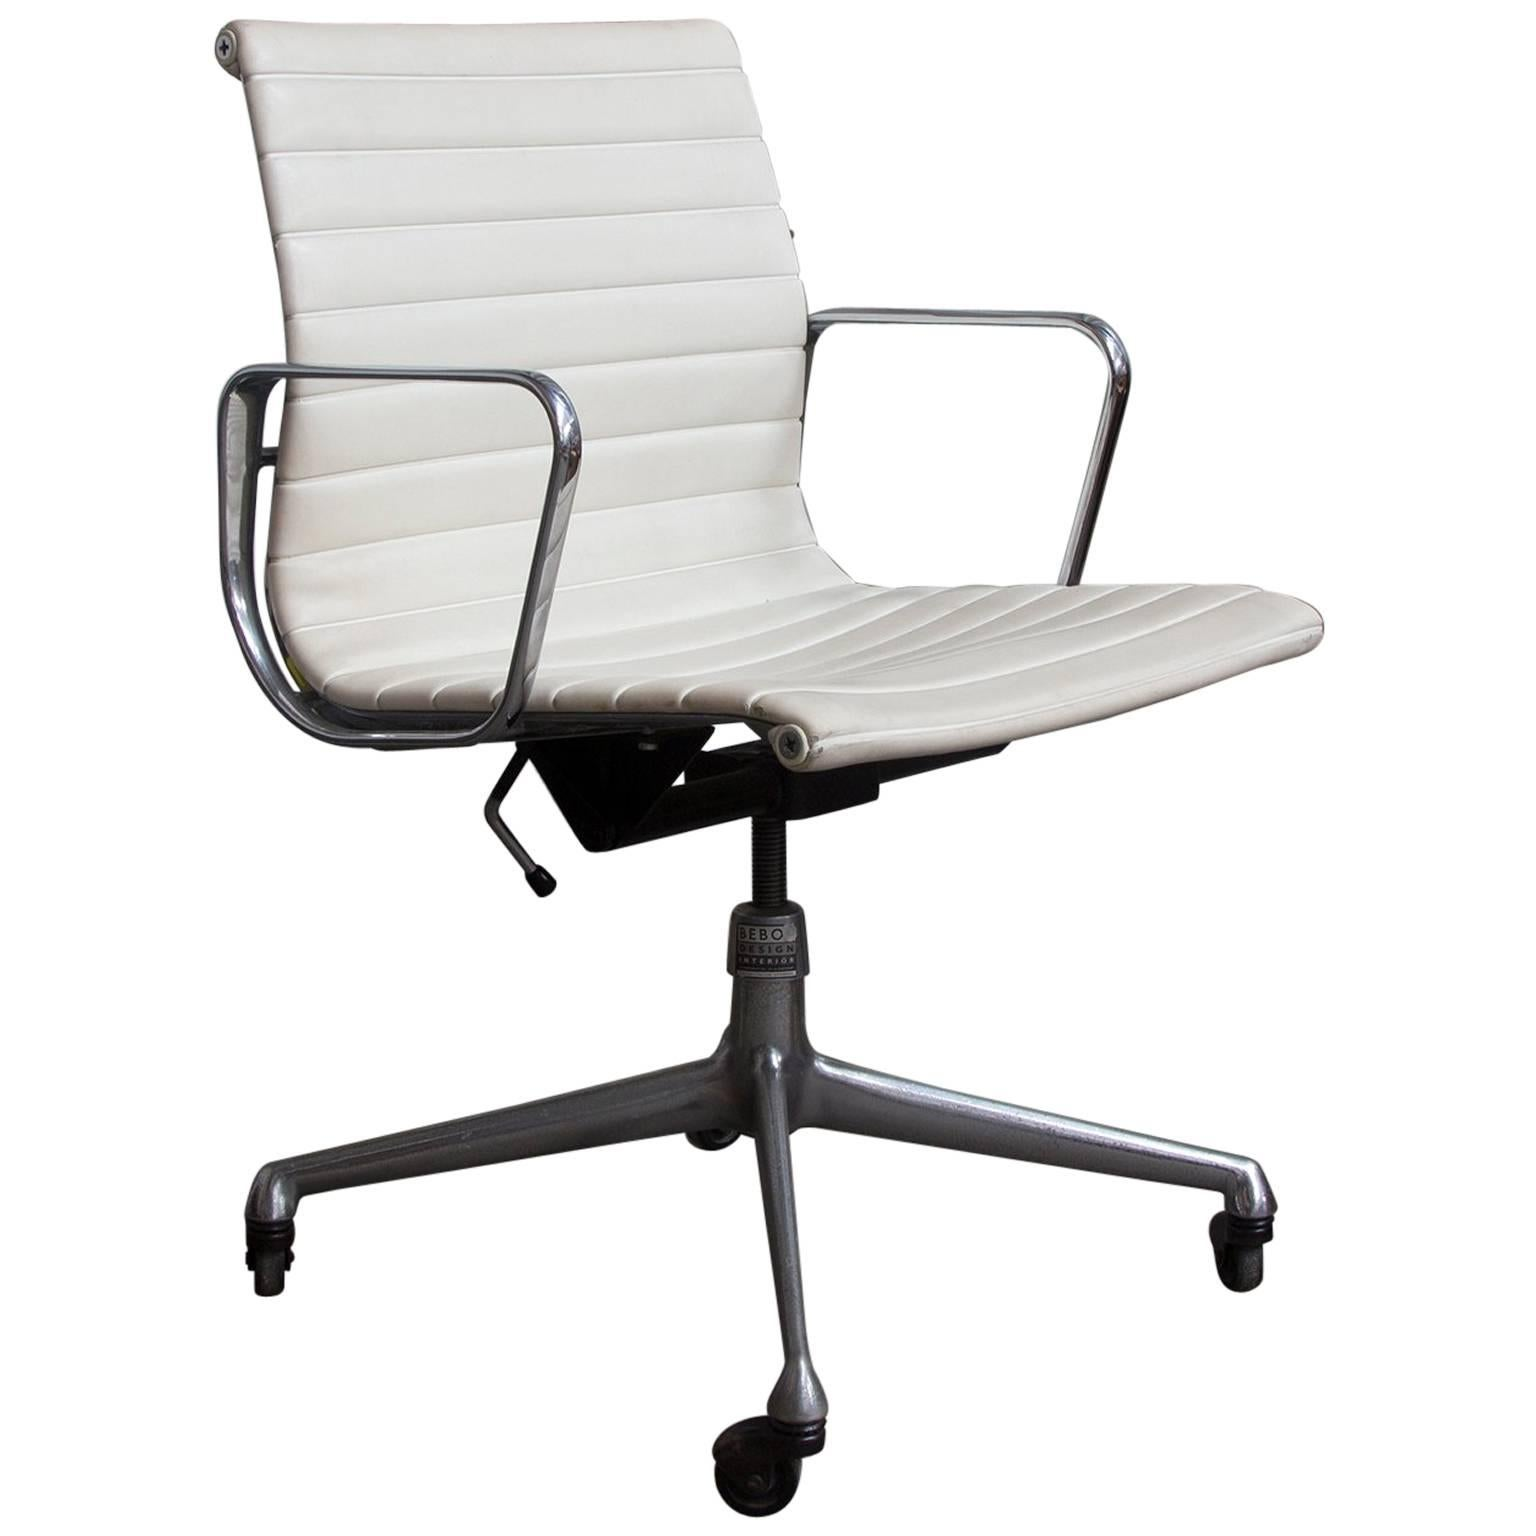 Off white office chair Furniture 1958 Ray And Charles Eames White Vinyl Adjust Tilt Office Chair Four Wheels 1stdibs 1958 Ray And Charles Eames White Vinyl Adjust Tilt Office Chair